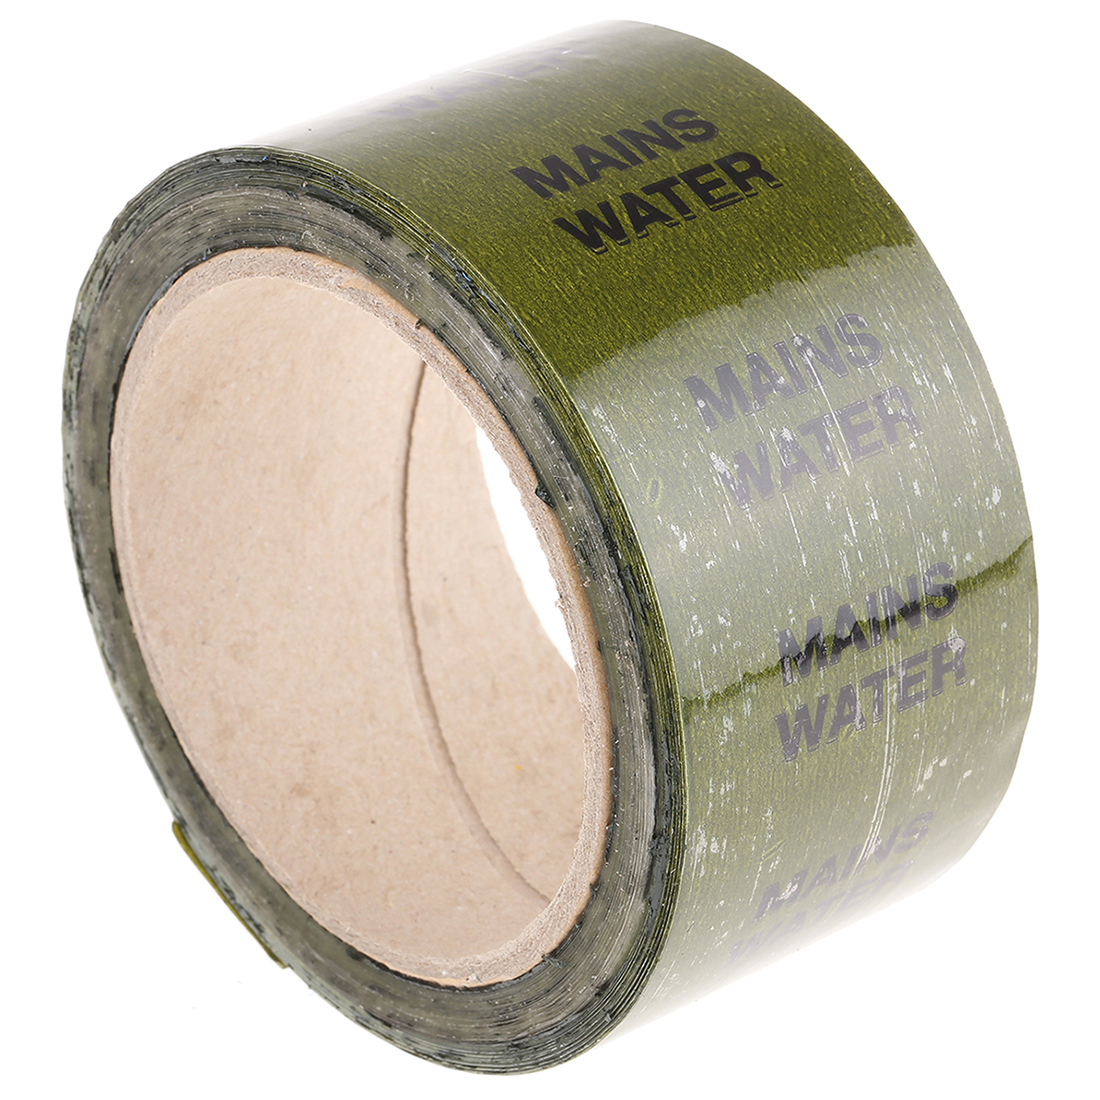 RS PRO Green PP, Vinyl Pipe Marking Tape, text Mains Water, Dim. W 50mm x L 33m - 33 Pack